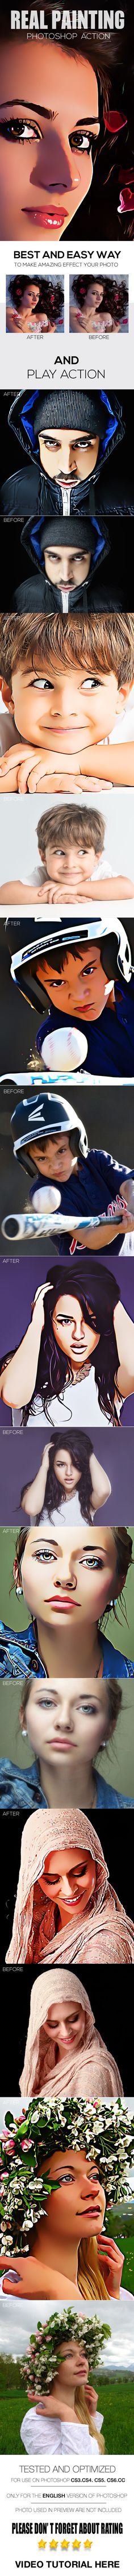 Real Painting Photoshop Action - Photo Effects Actions